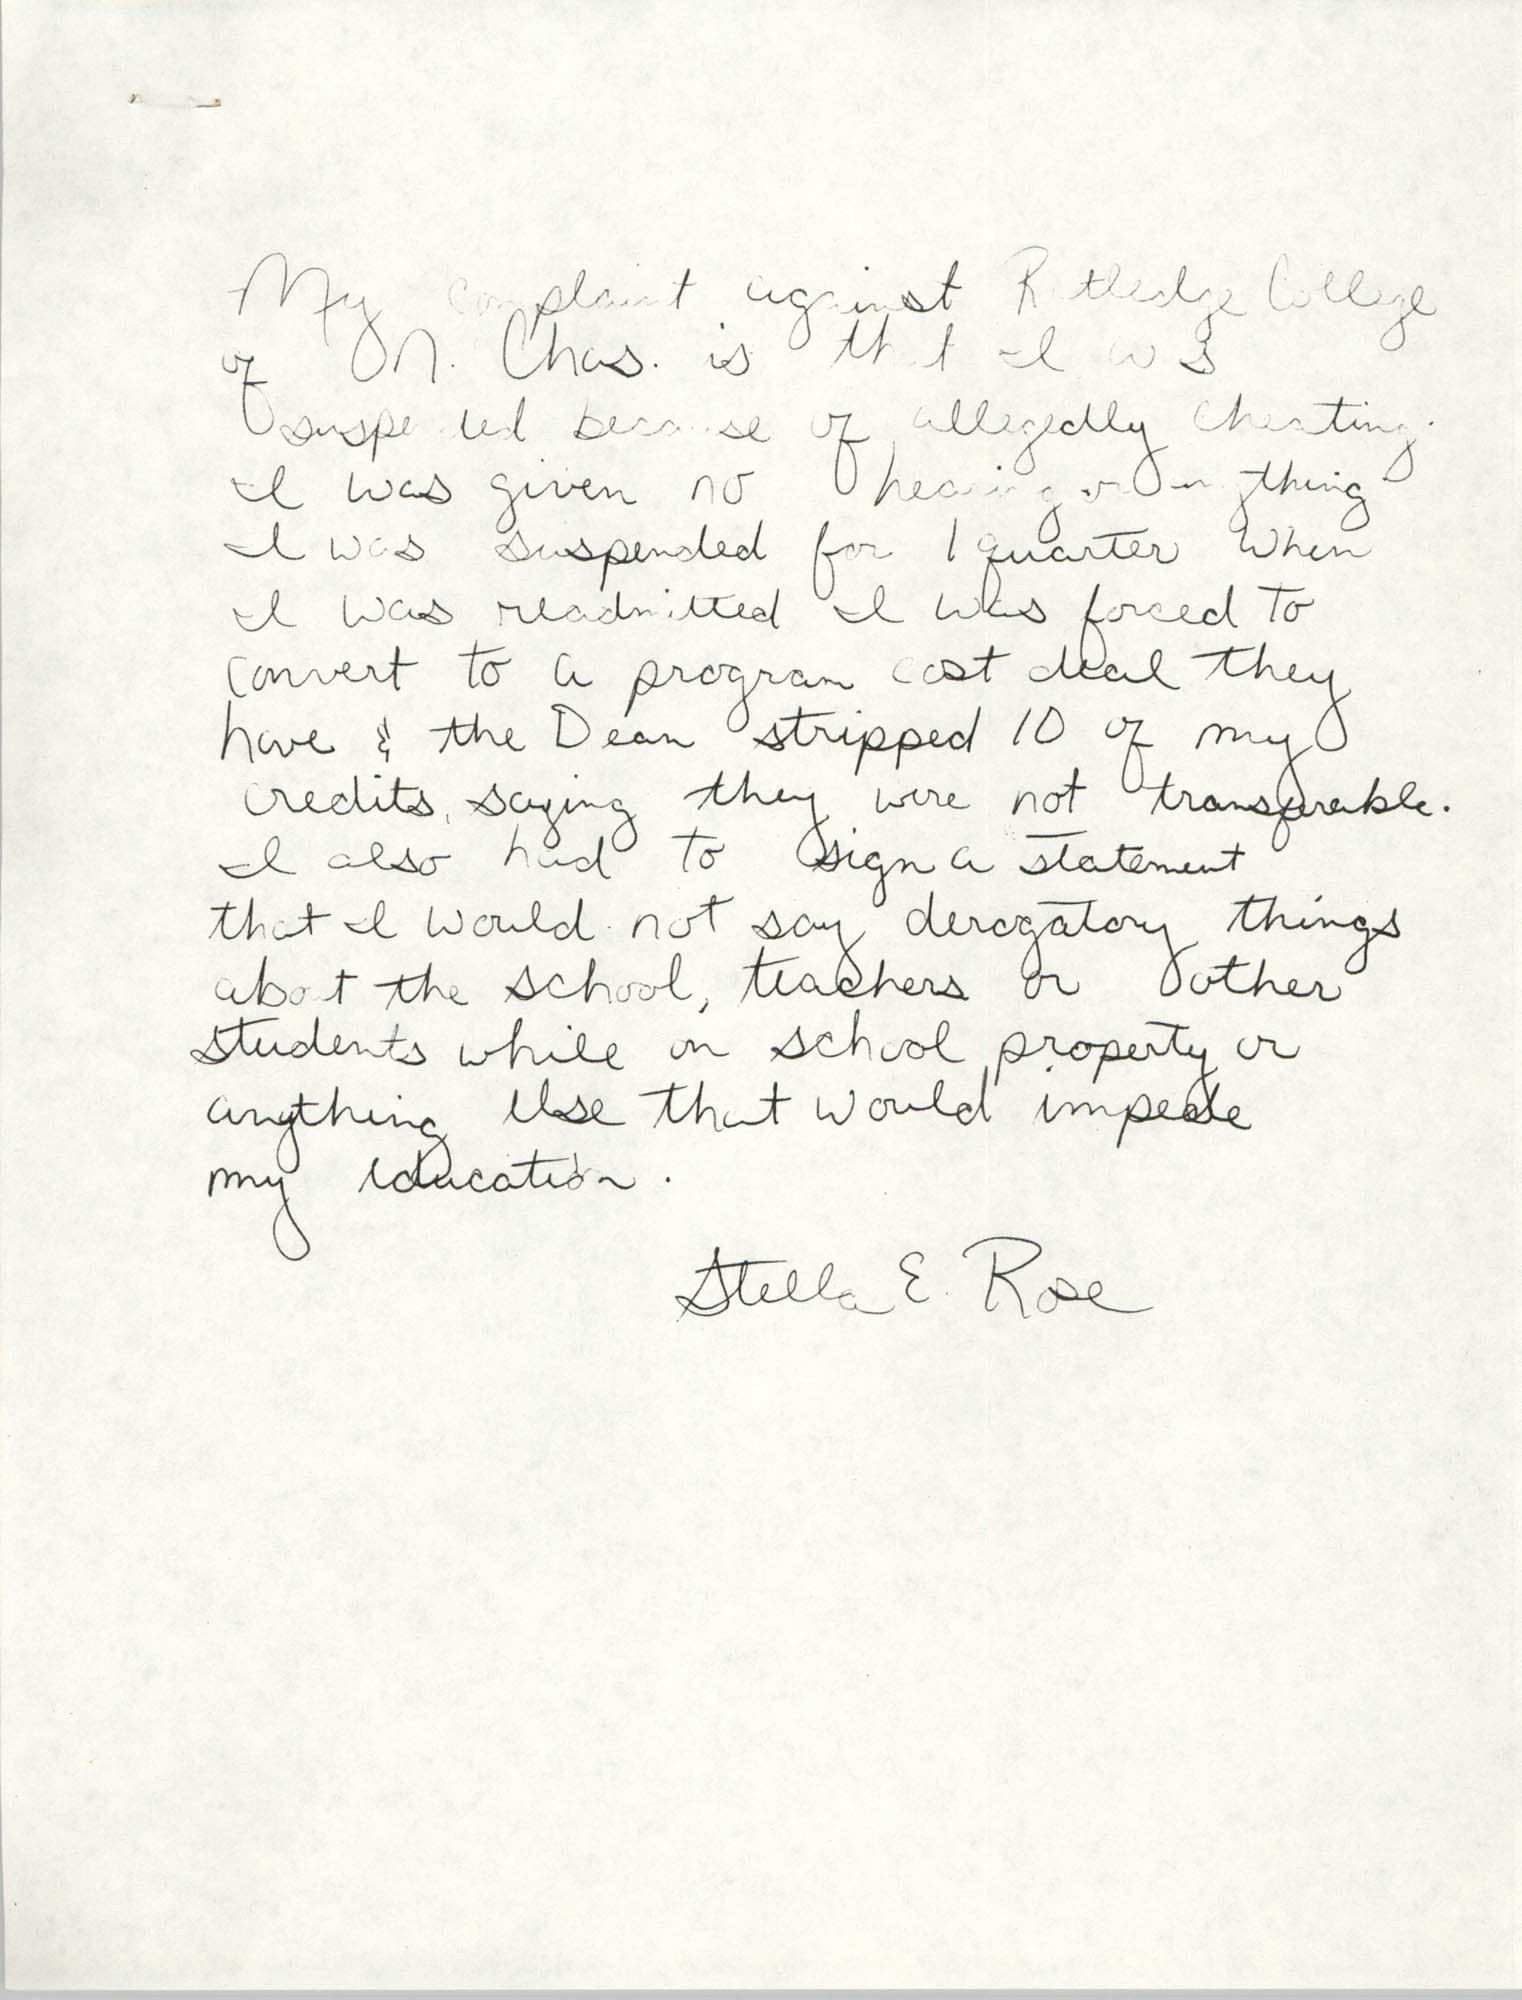 Handwritten letter by Stella E. Rose